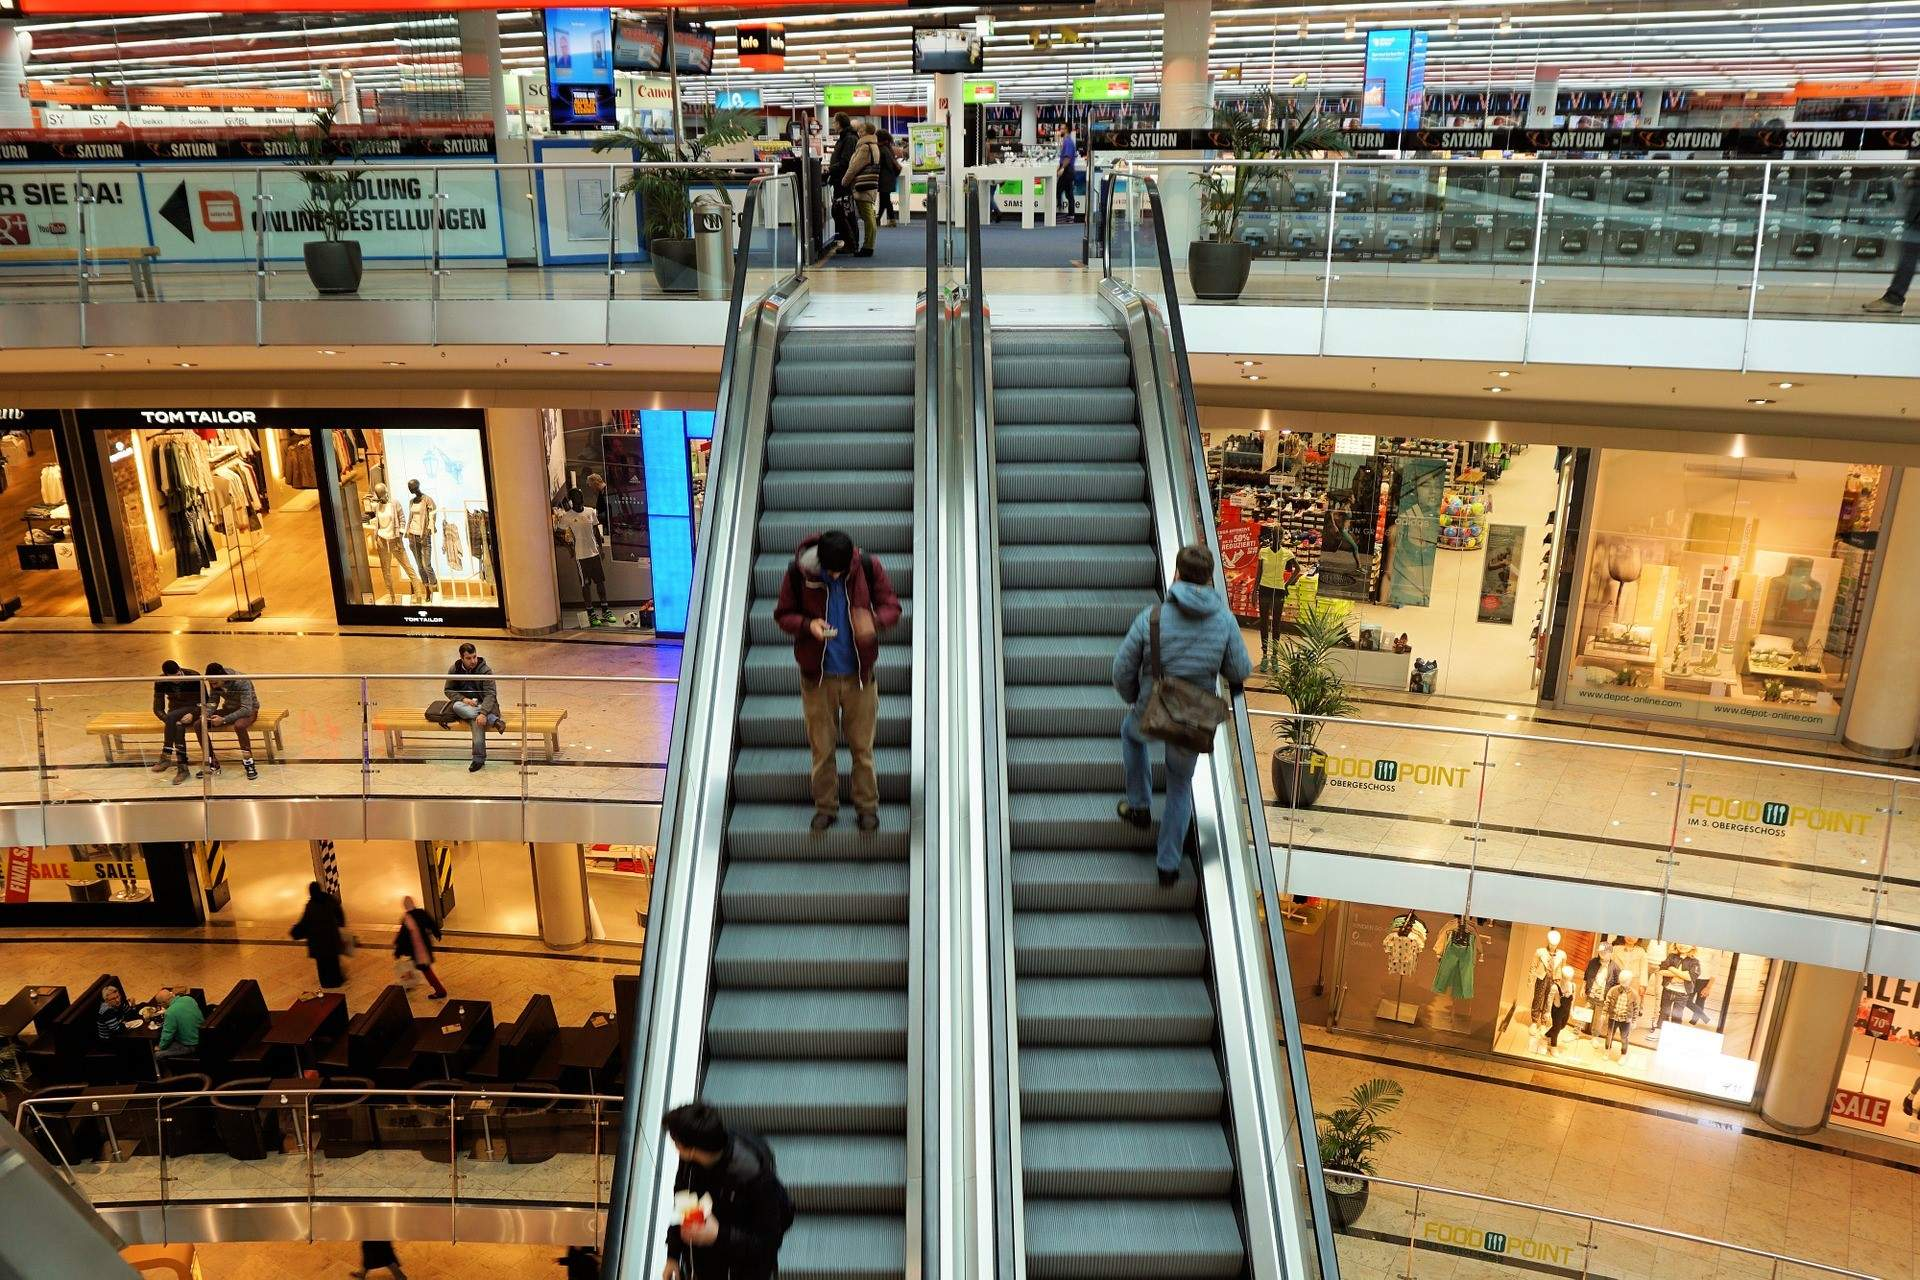 Shopping center patrons on escalator